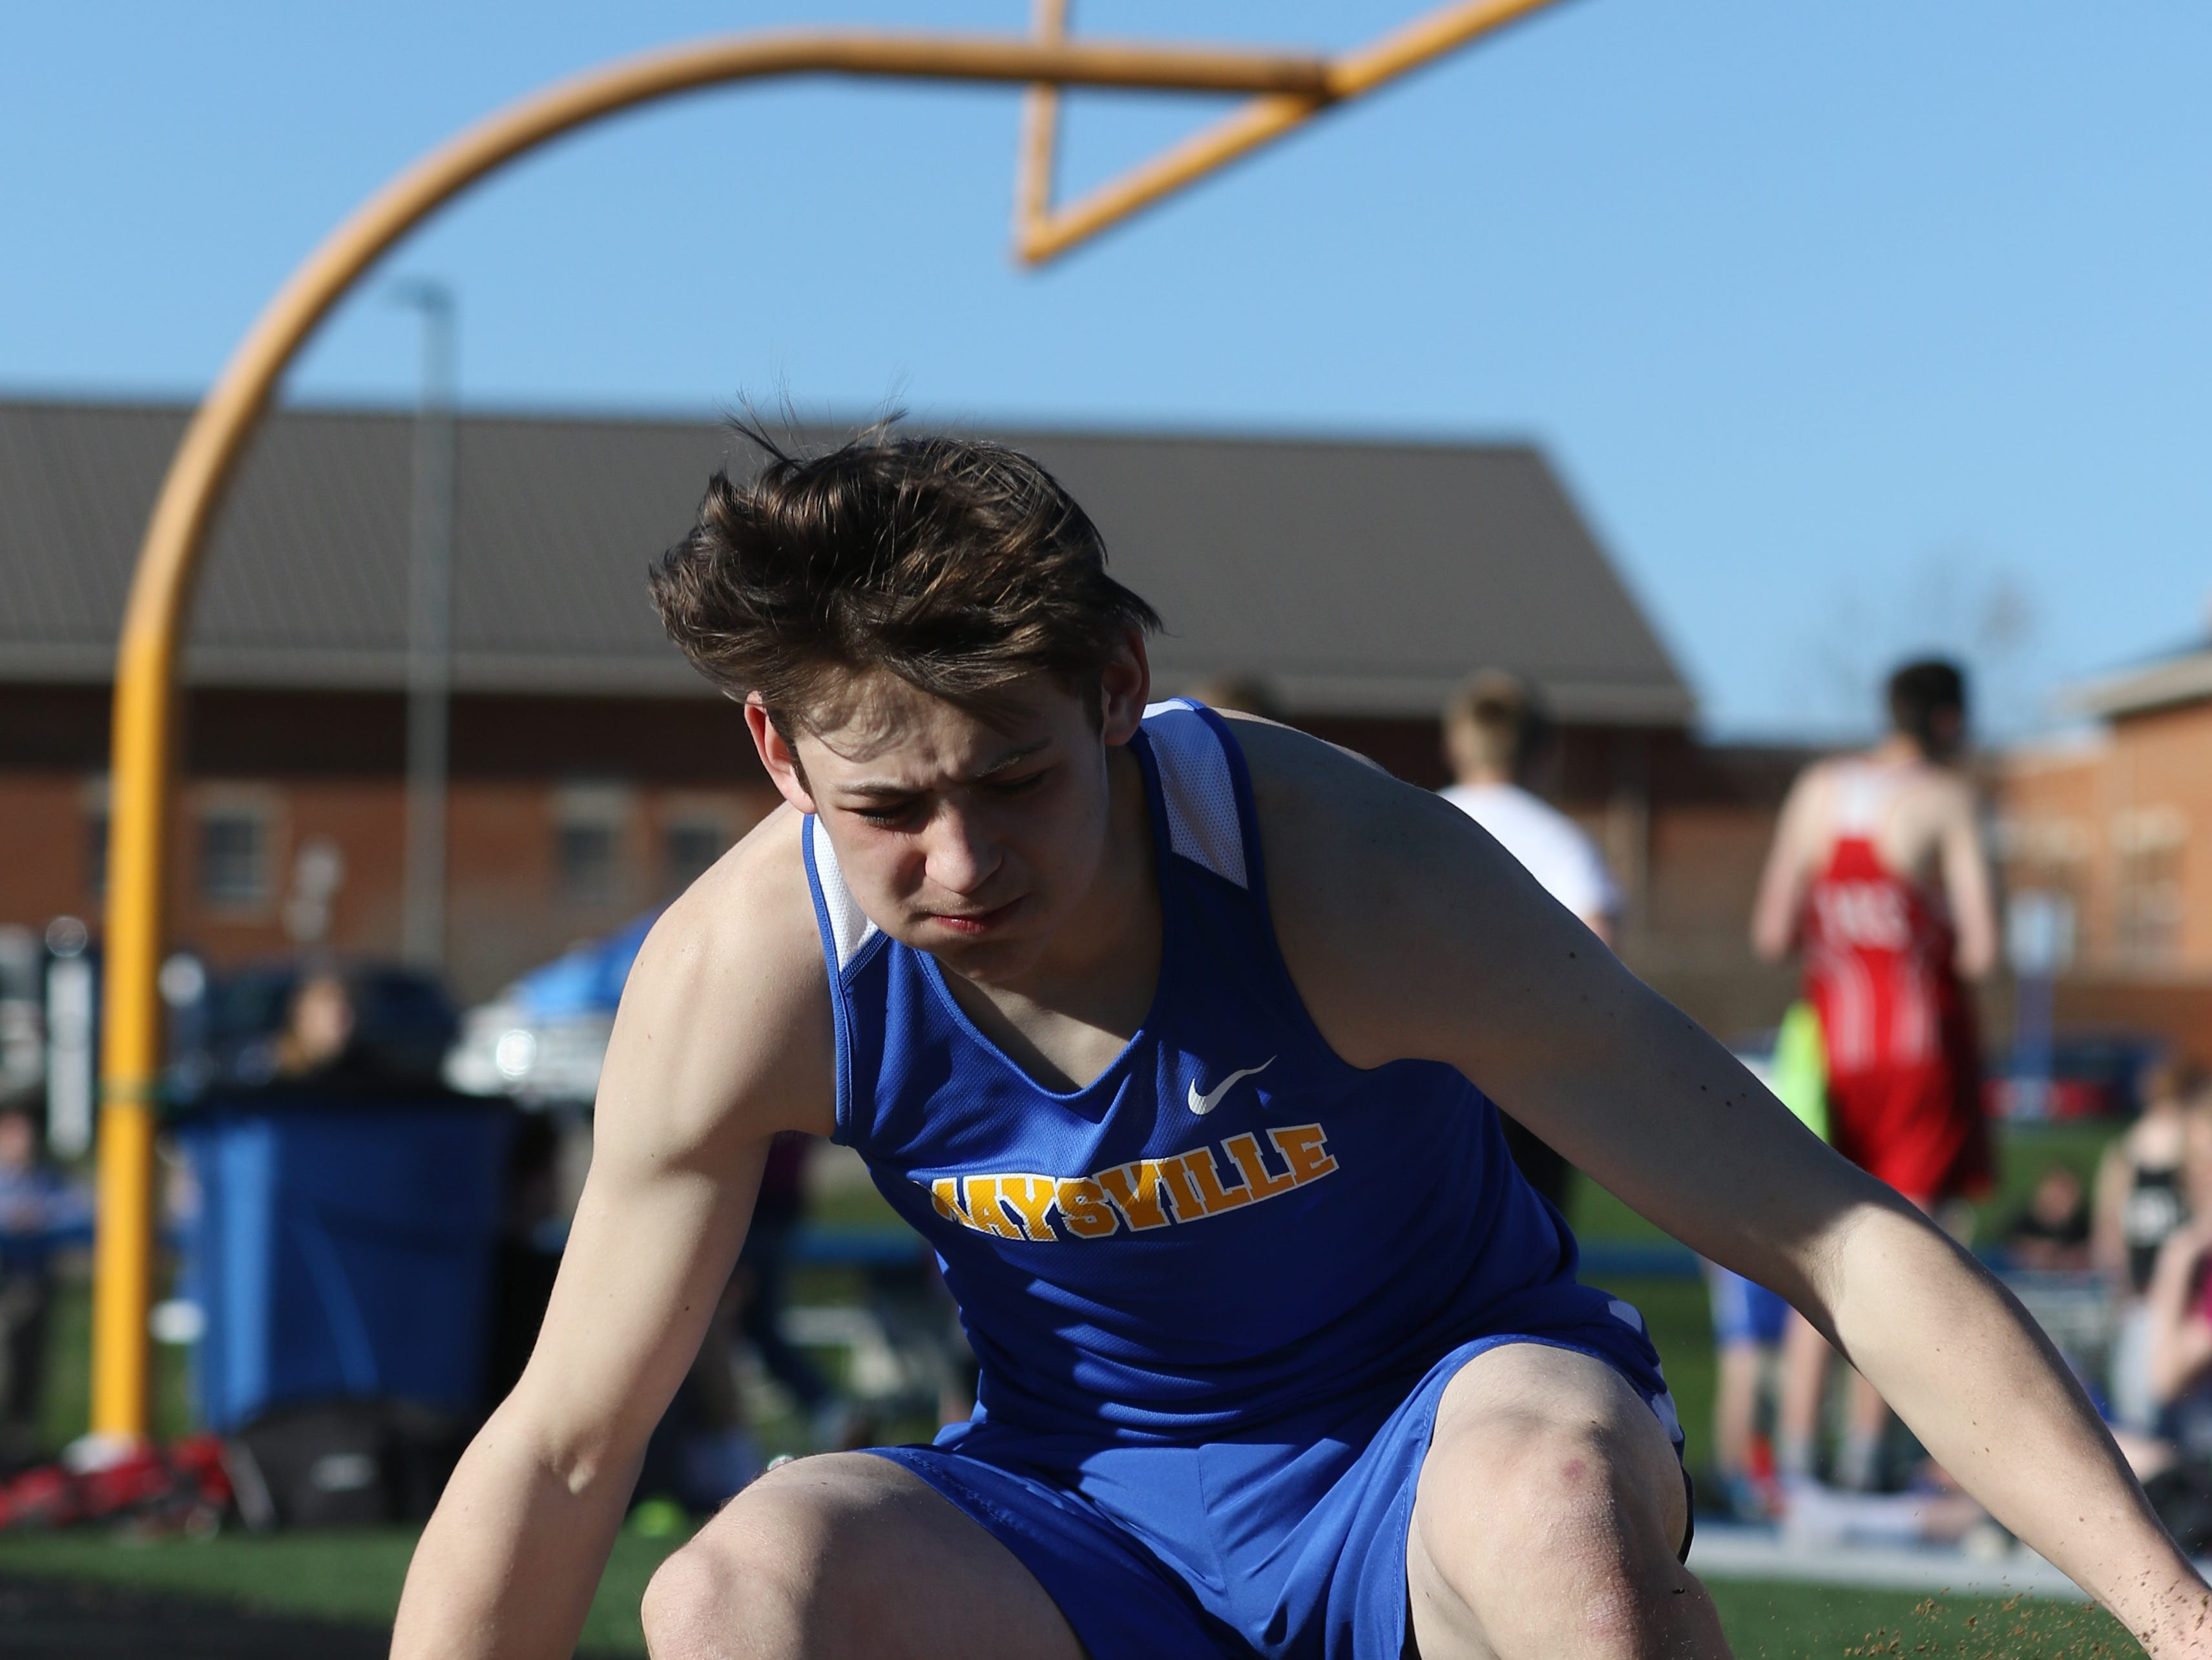 Maysville's Eli Brooks competes in the long jump during Tuesday's tri-meet between Sheridan, New Lexington and host Maysville.